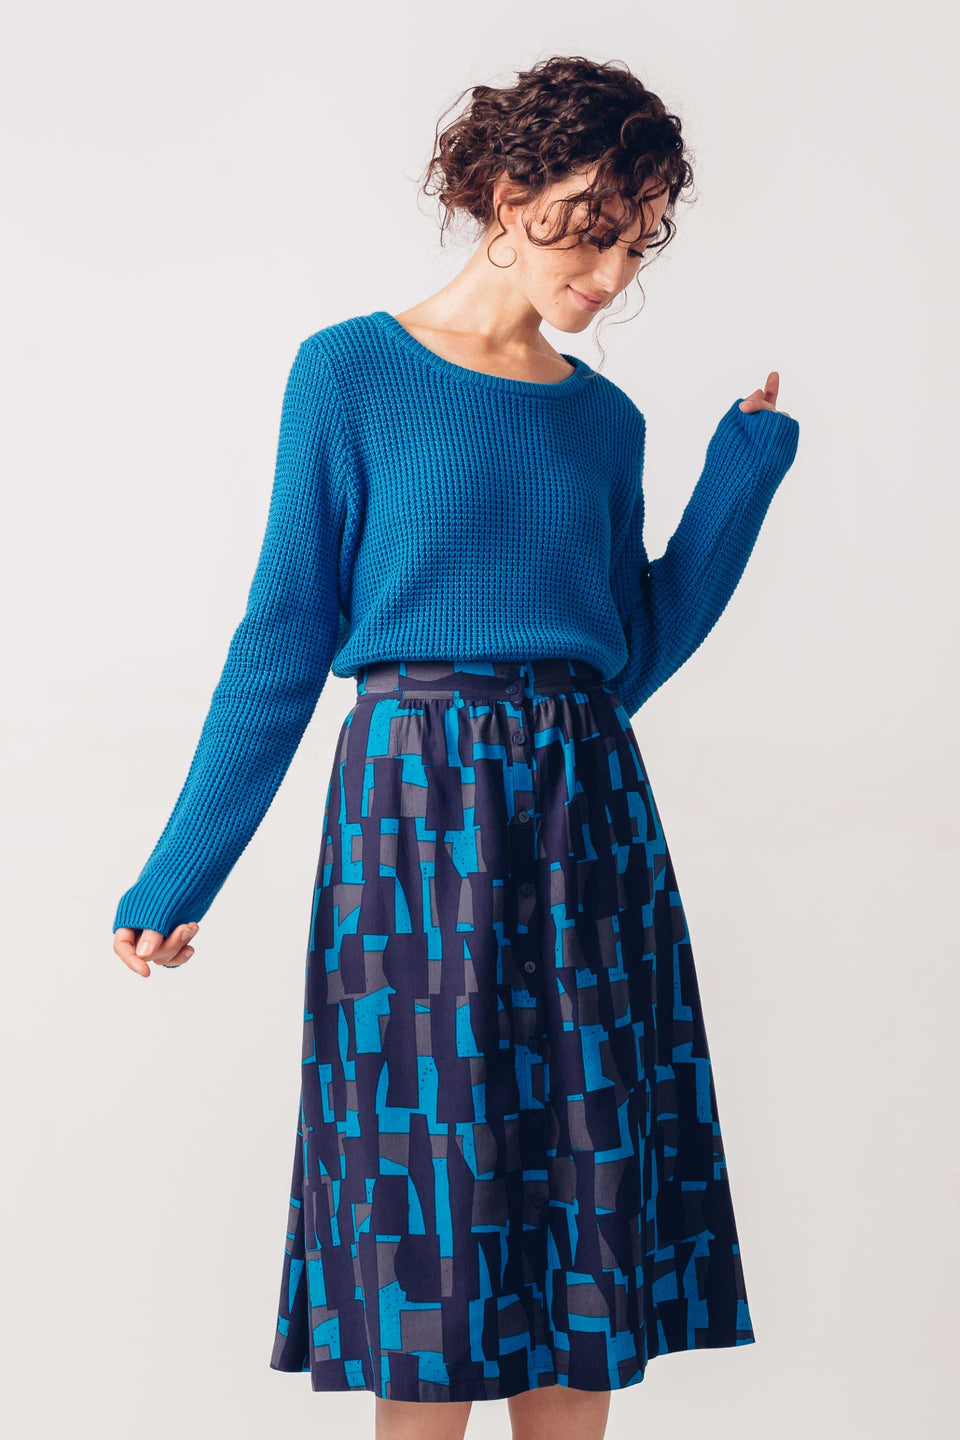 Iradi Sweater in Cyan